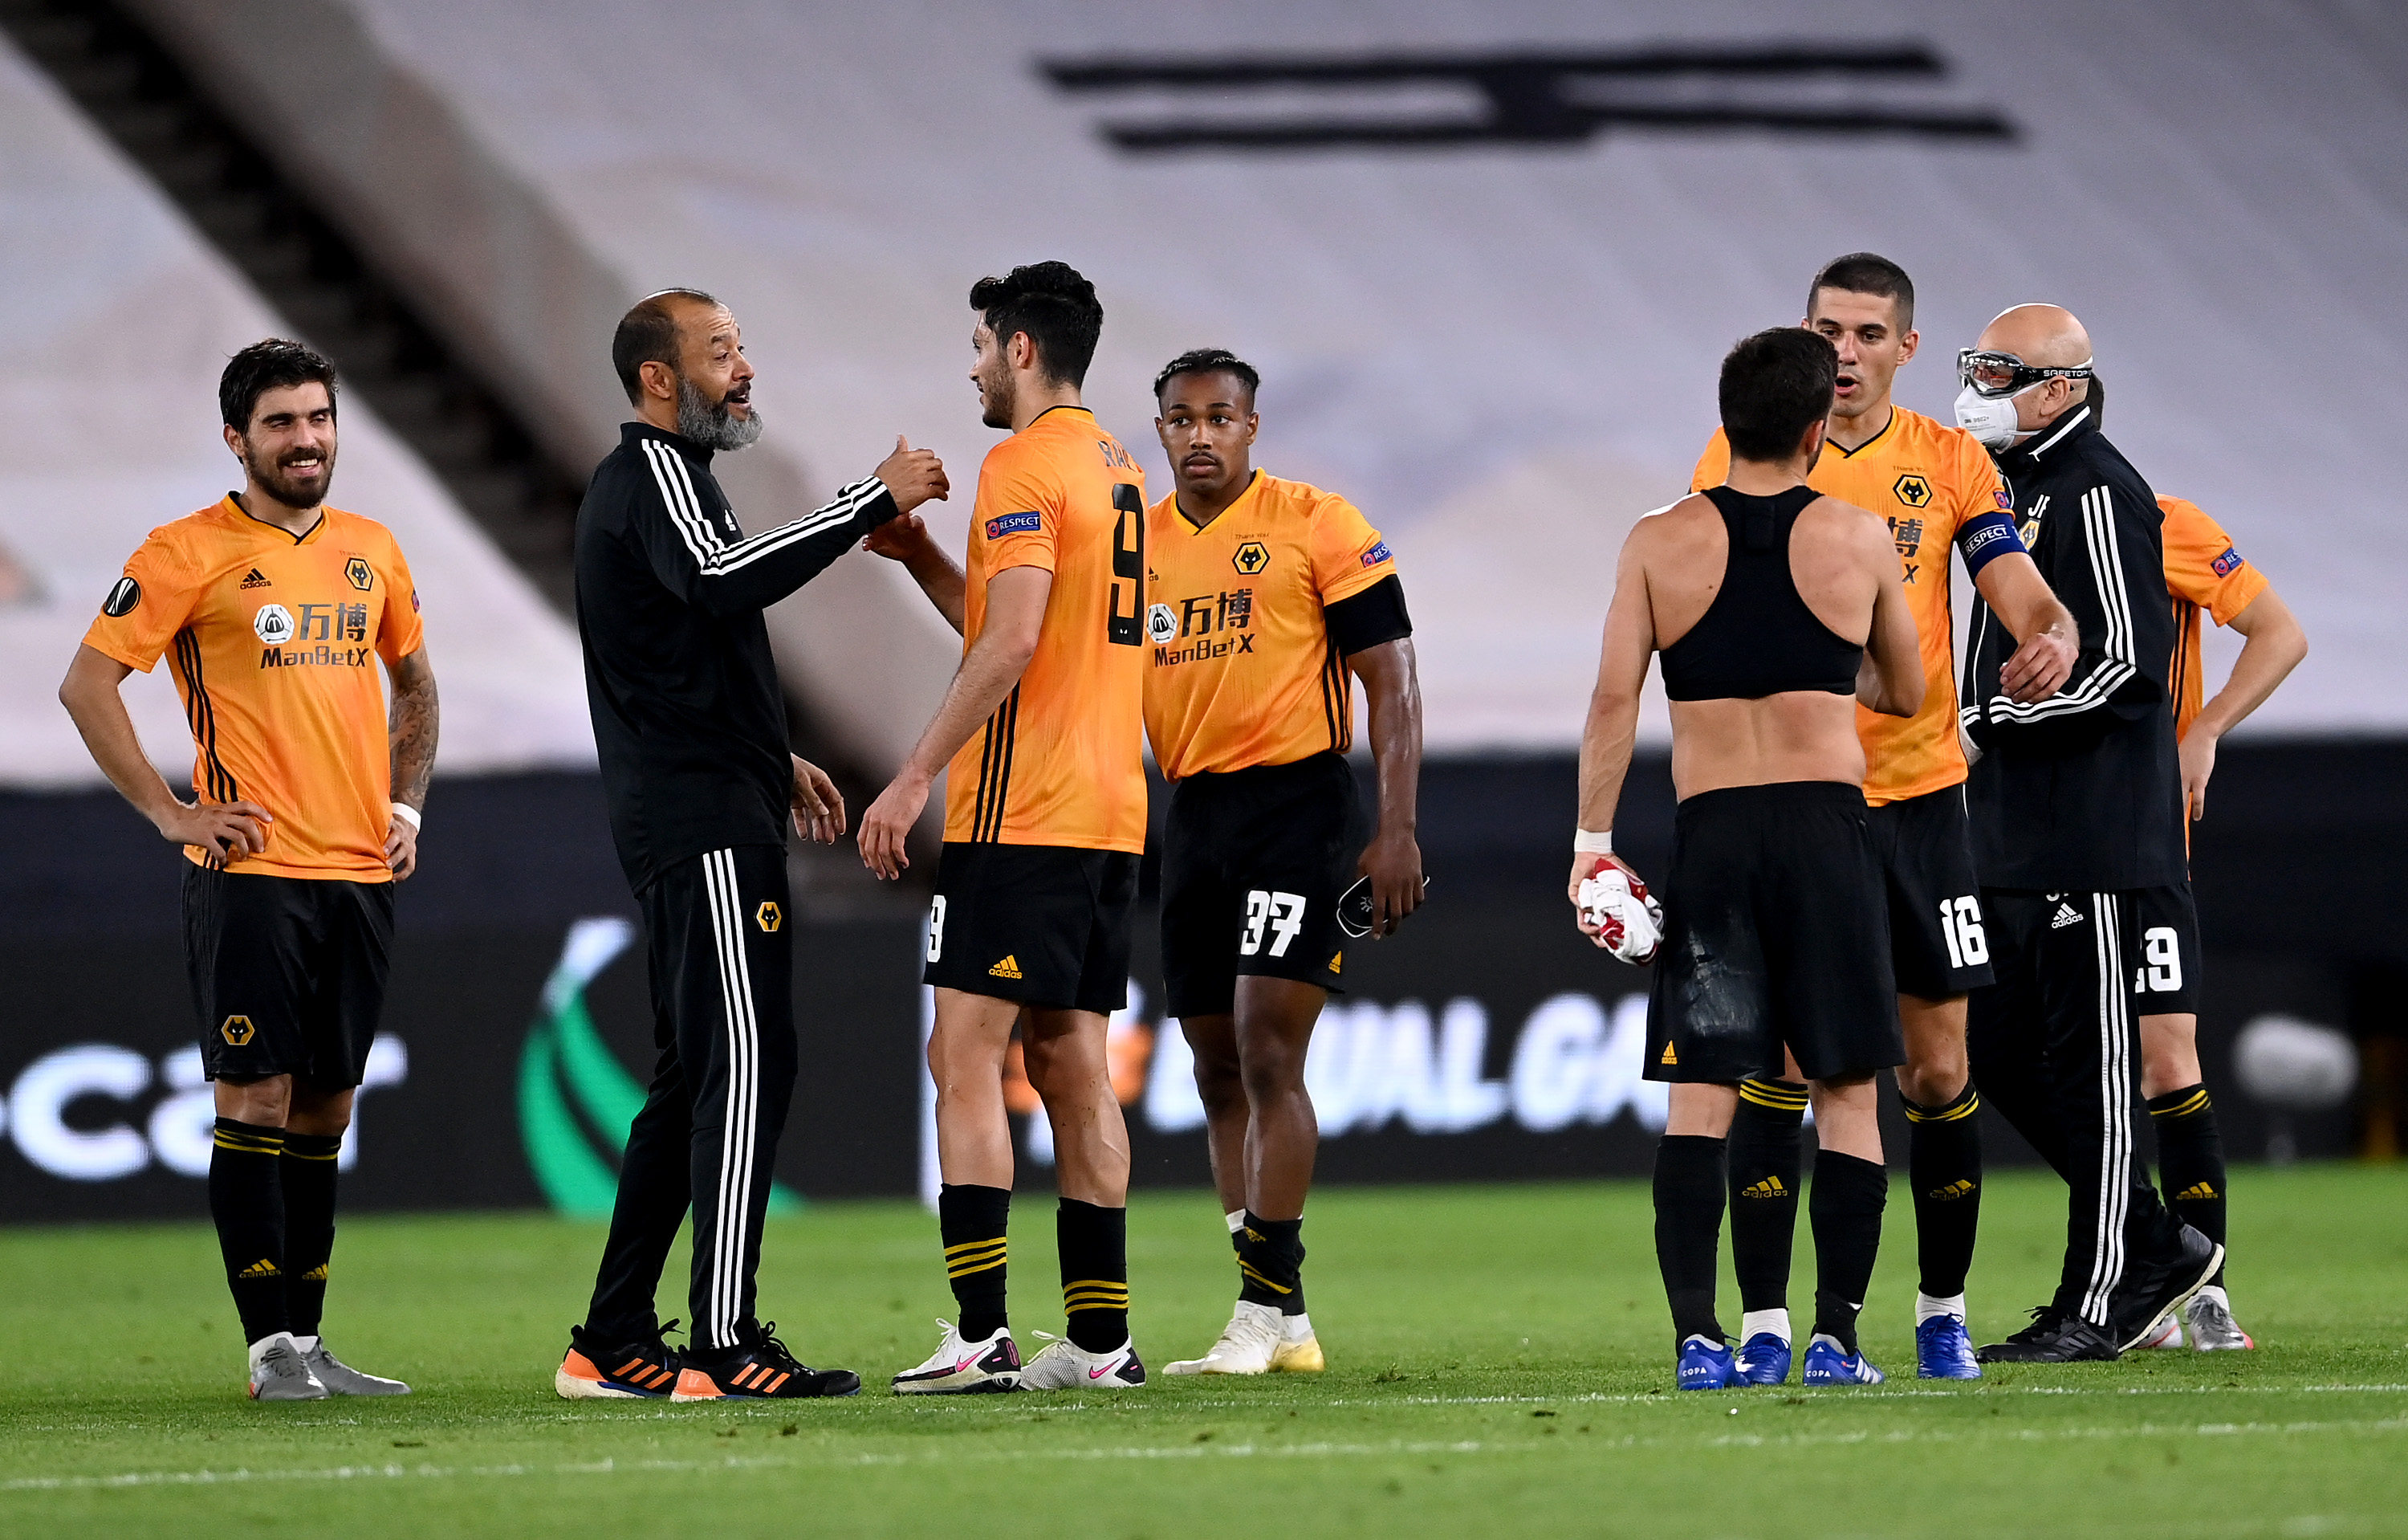 Three strikers Wolves should target in January (Wolves players and manager Nuno Espirito Santo is talking to his players in the photo)